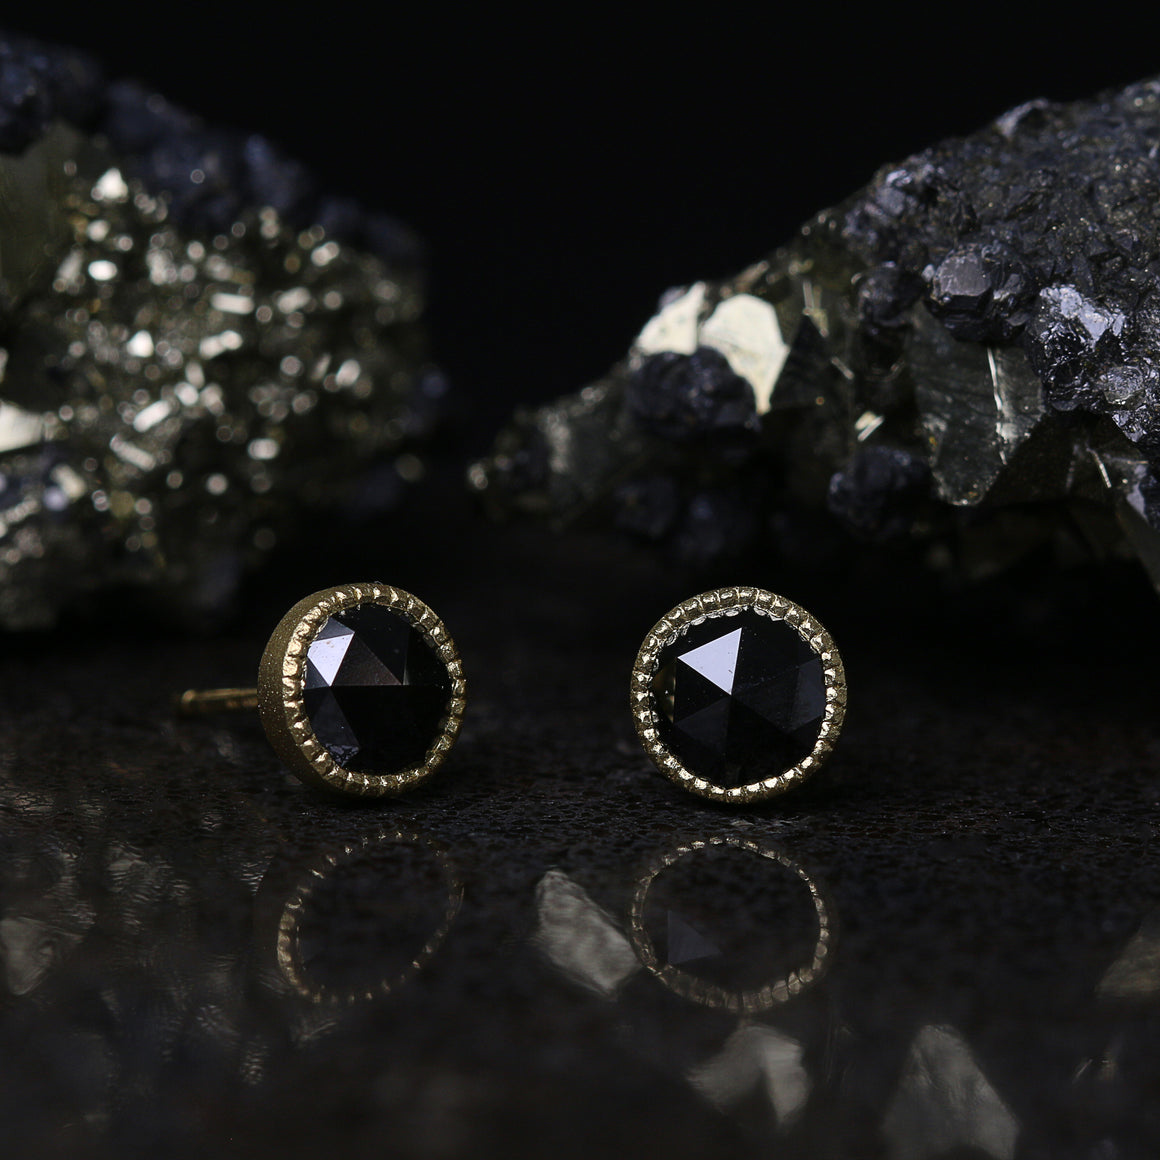 Rose Cut 7mm Black Diamond Stud Earrings in Yellow Gold